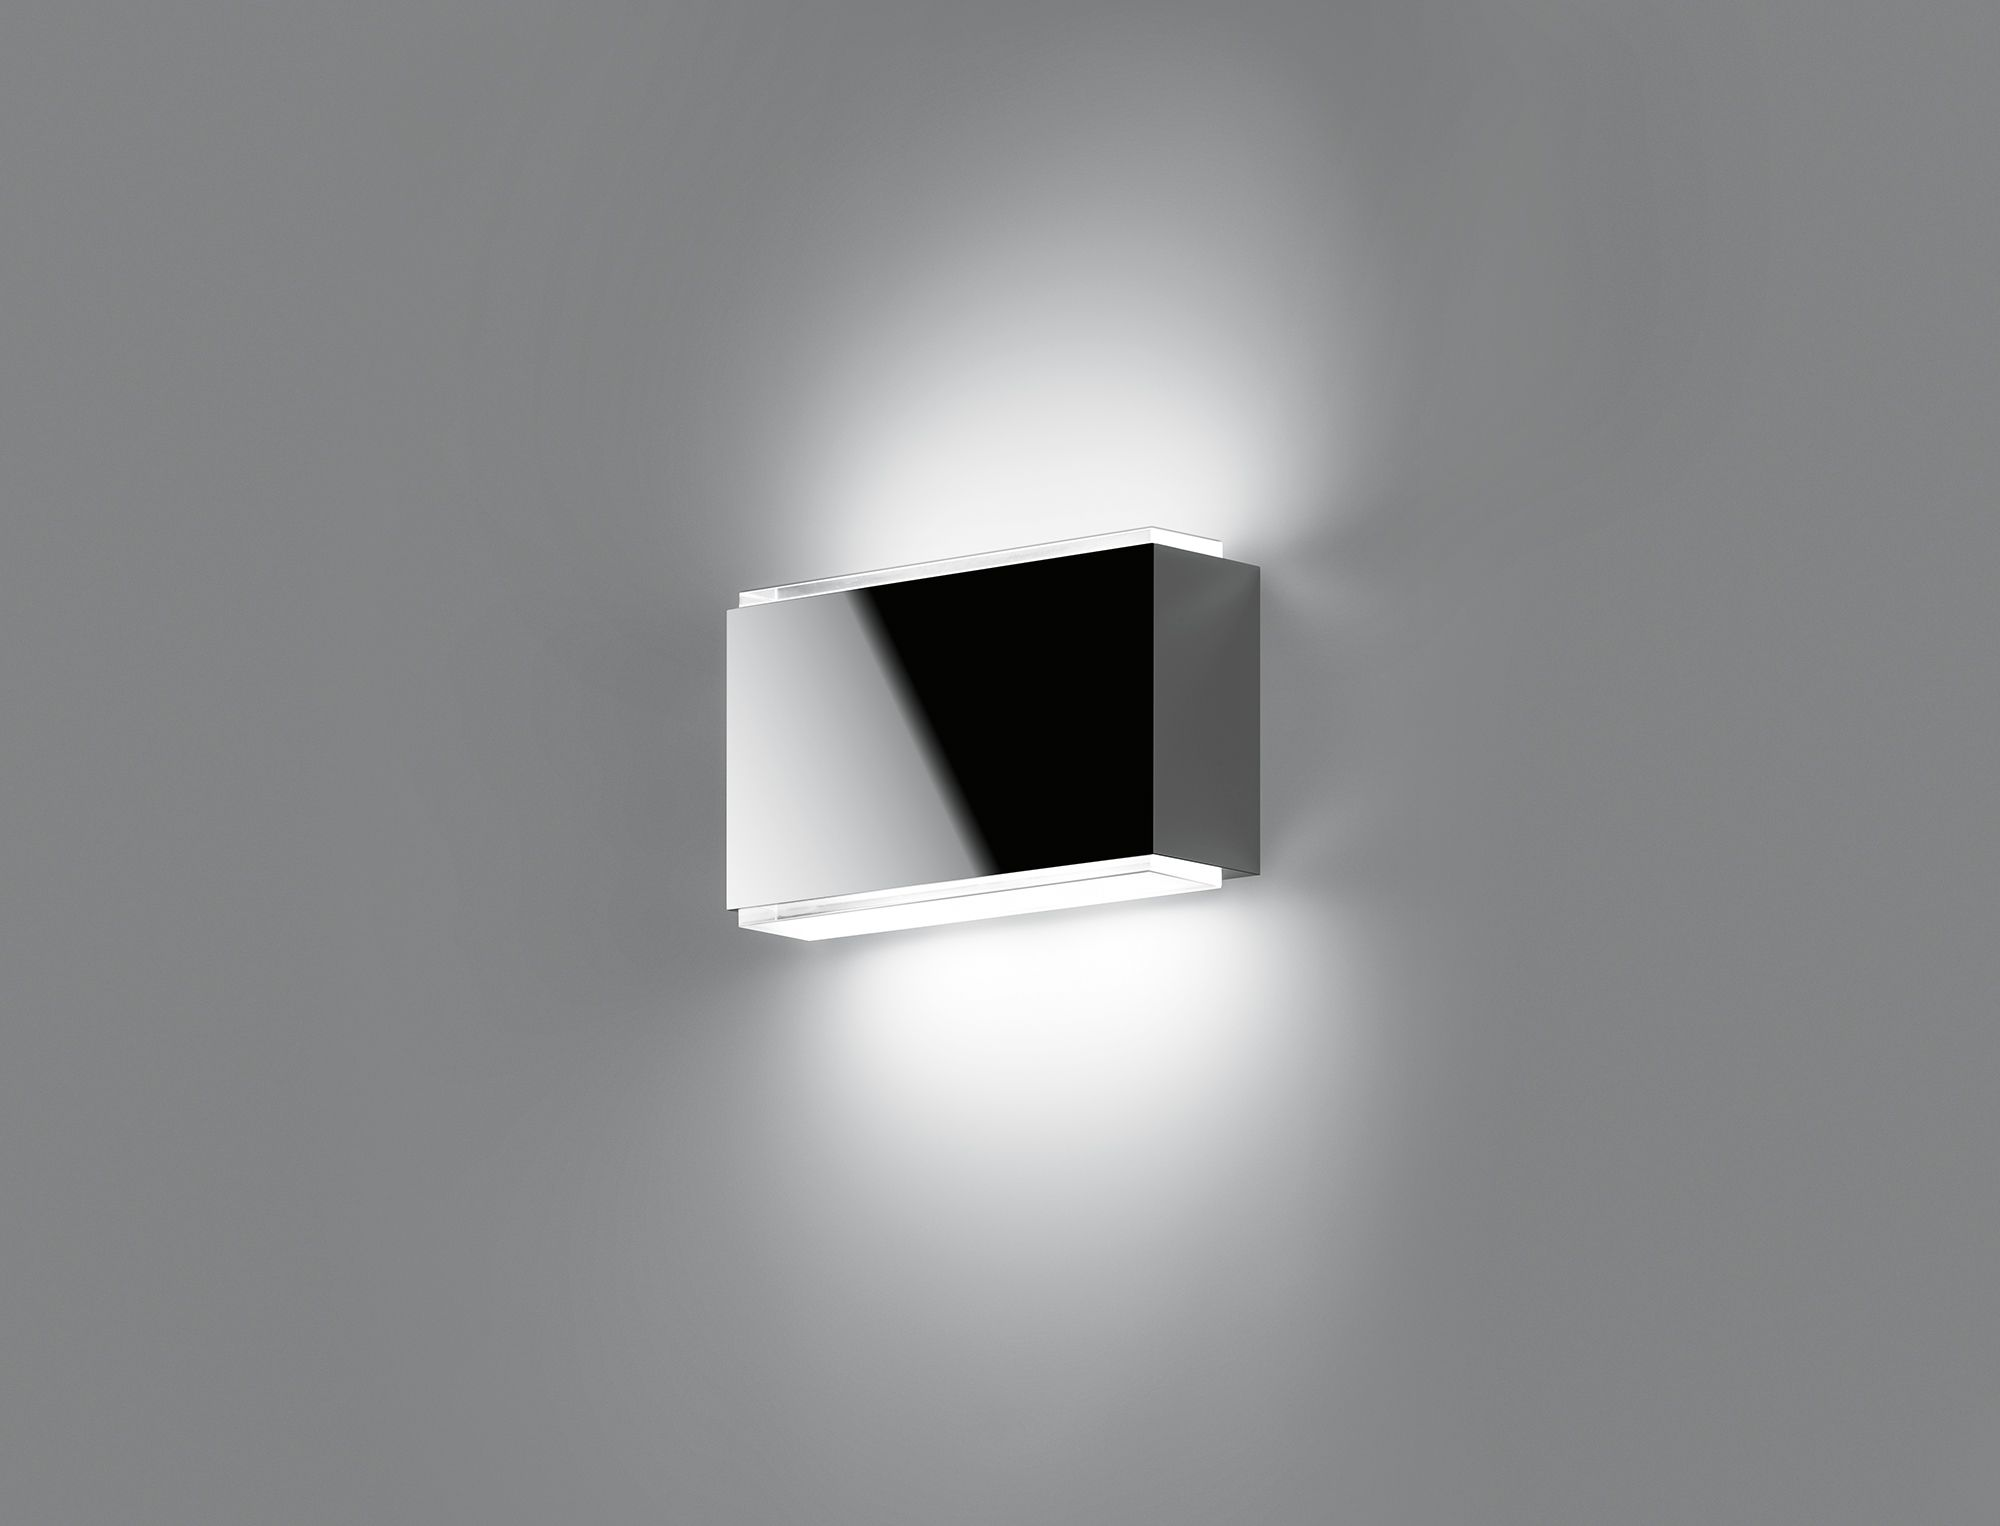 Luminaire Lighting Led Wall Luminaire W Light In Two Directions Luminaires With